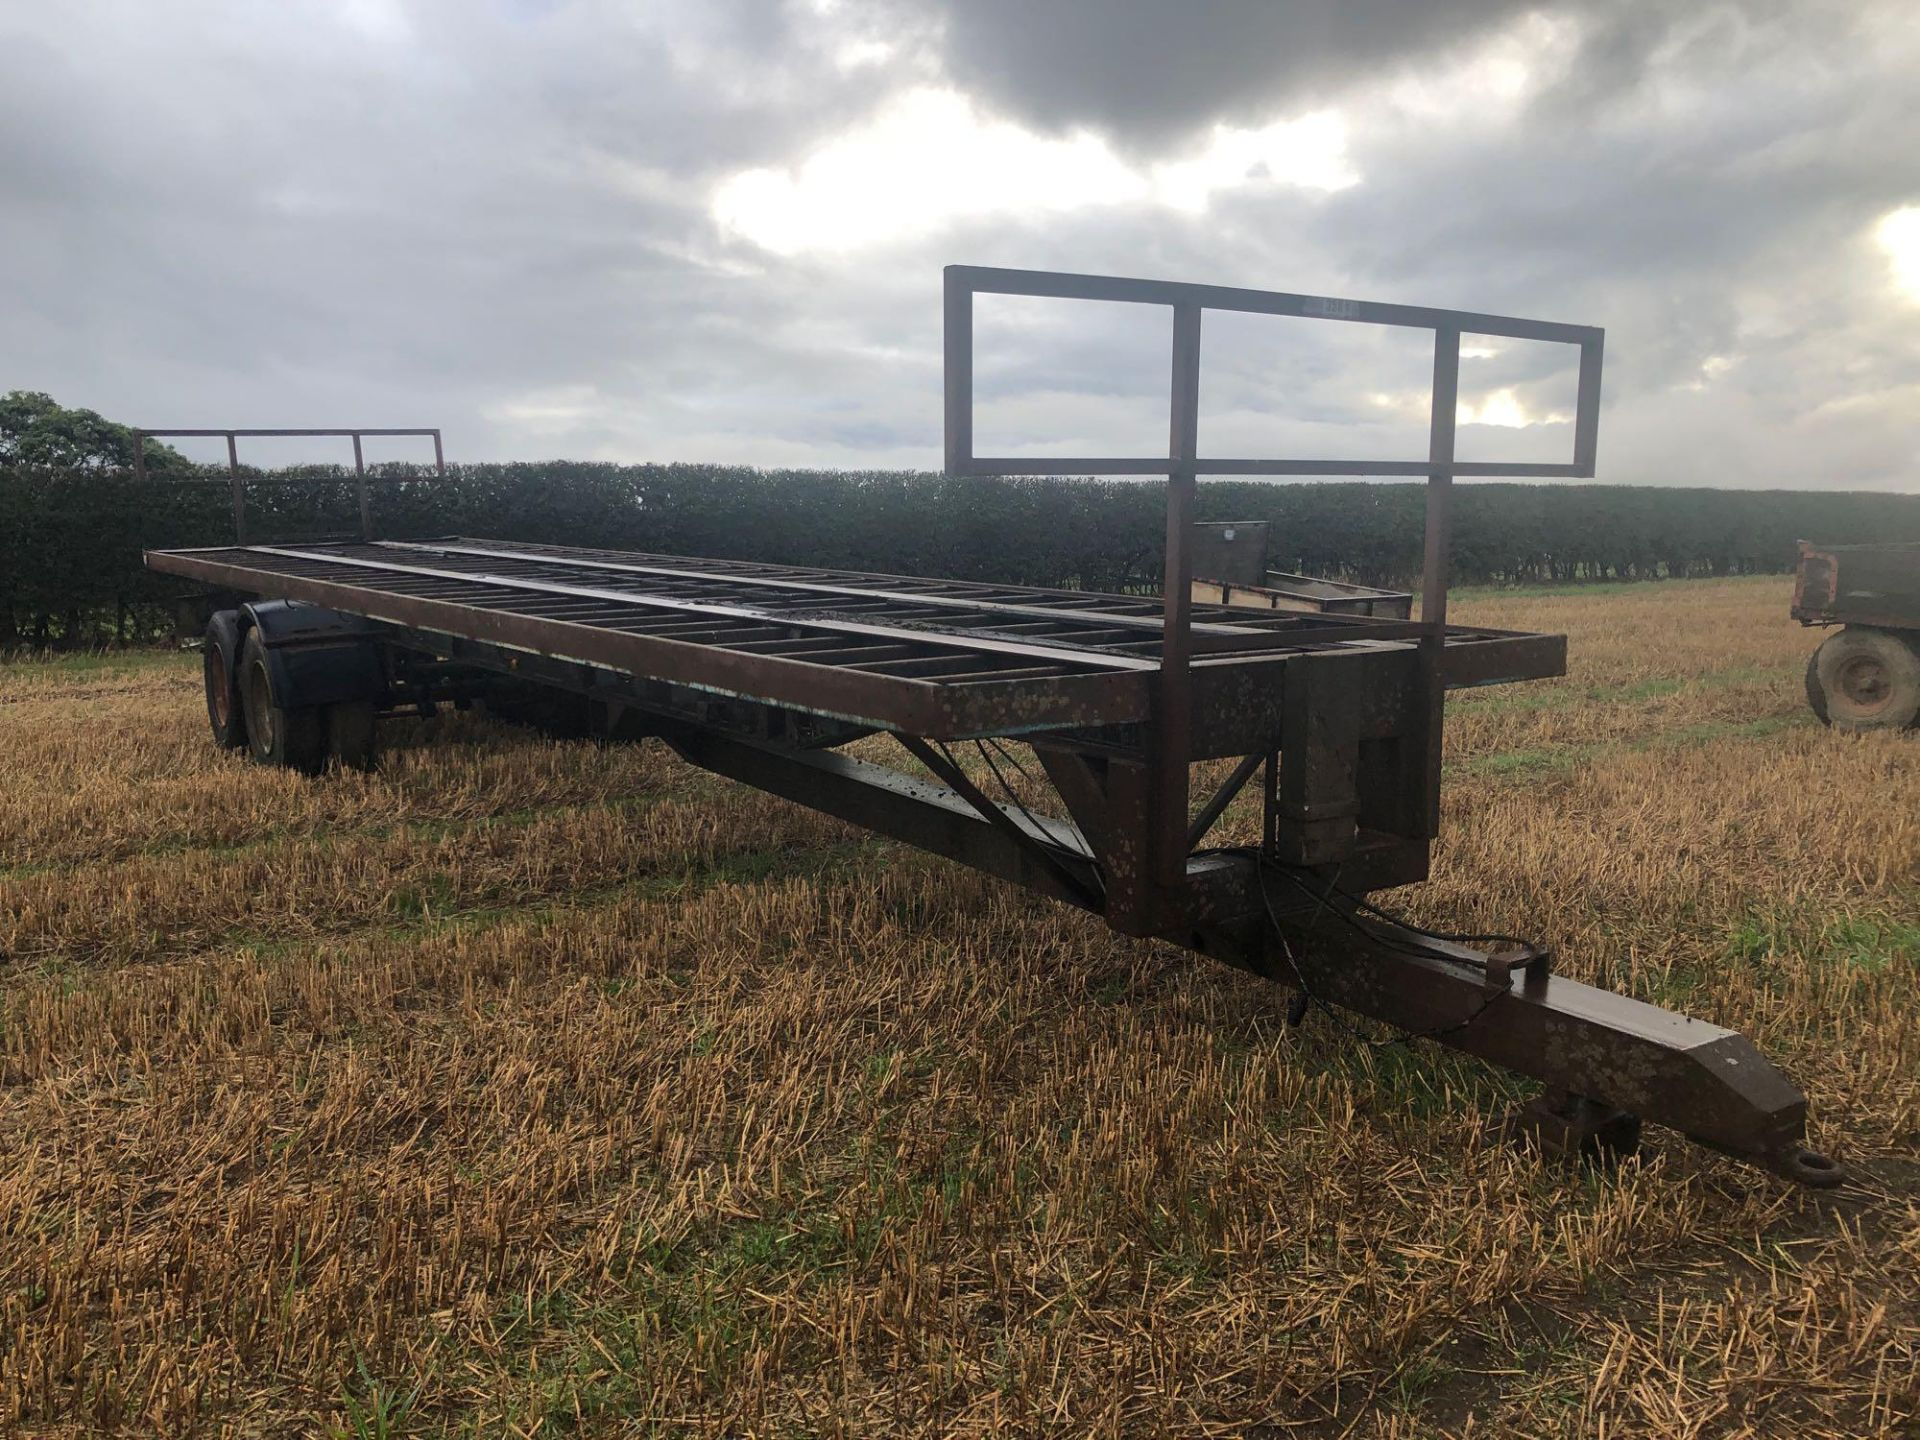 36ft twin axle flatbed trailer frame - Image 2 of 4